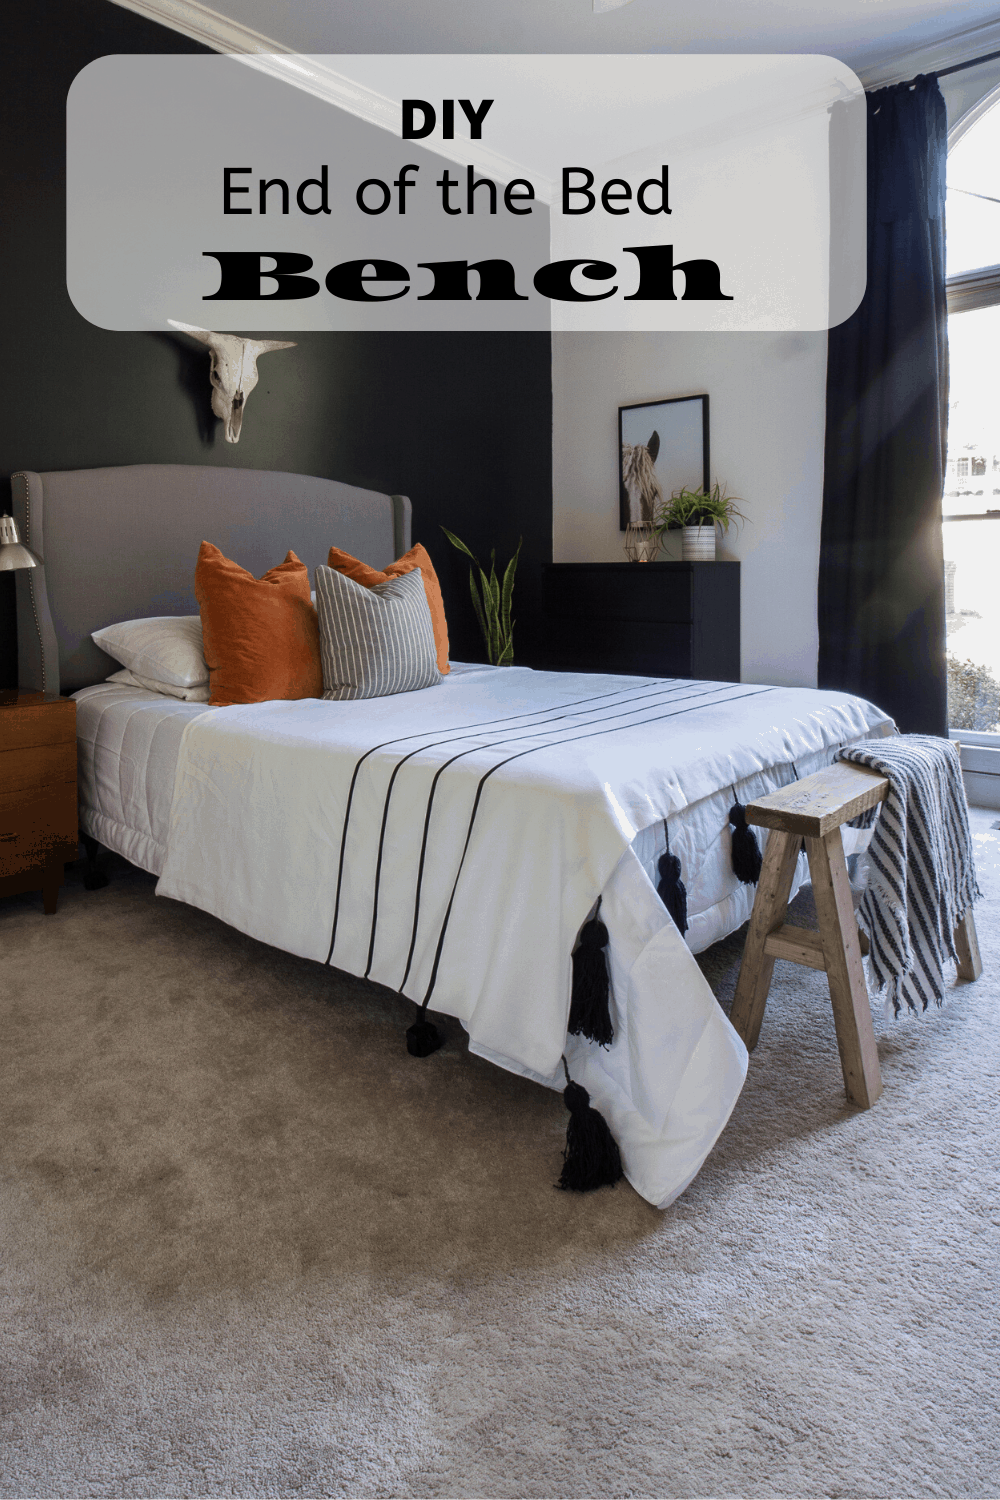 Make a wood bench for your bedroom.